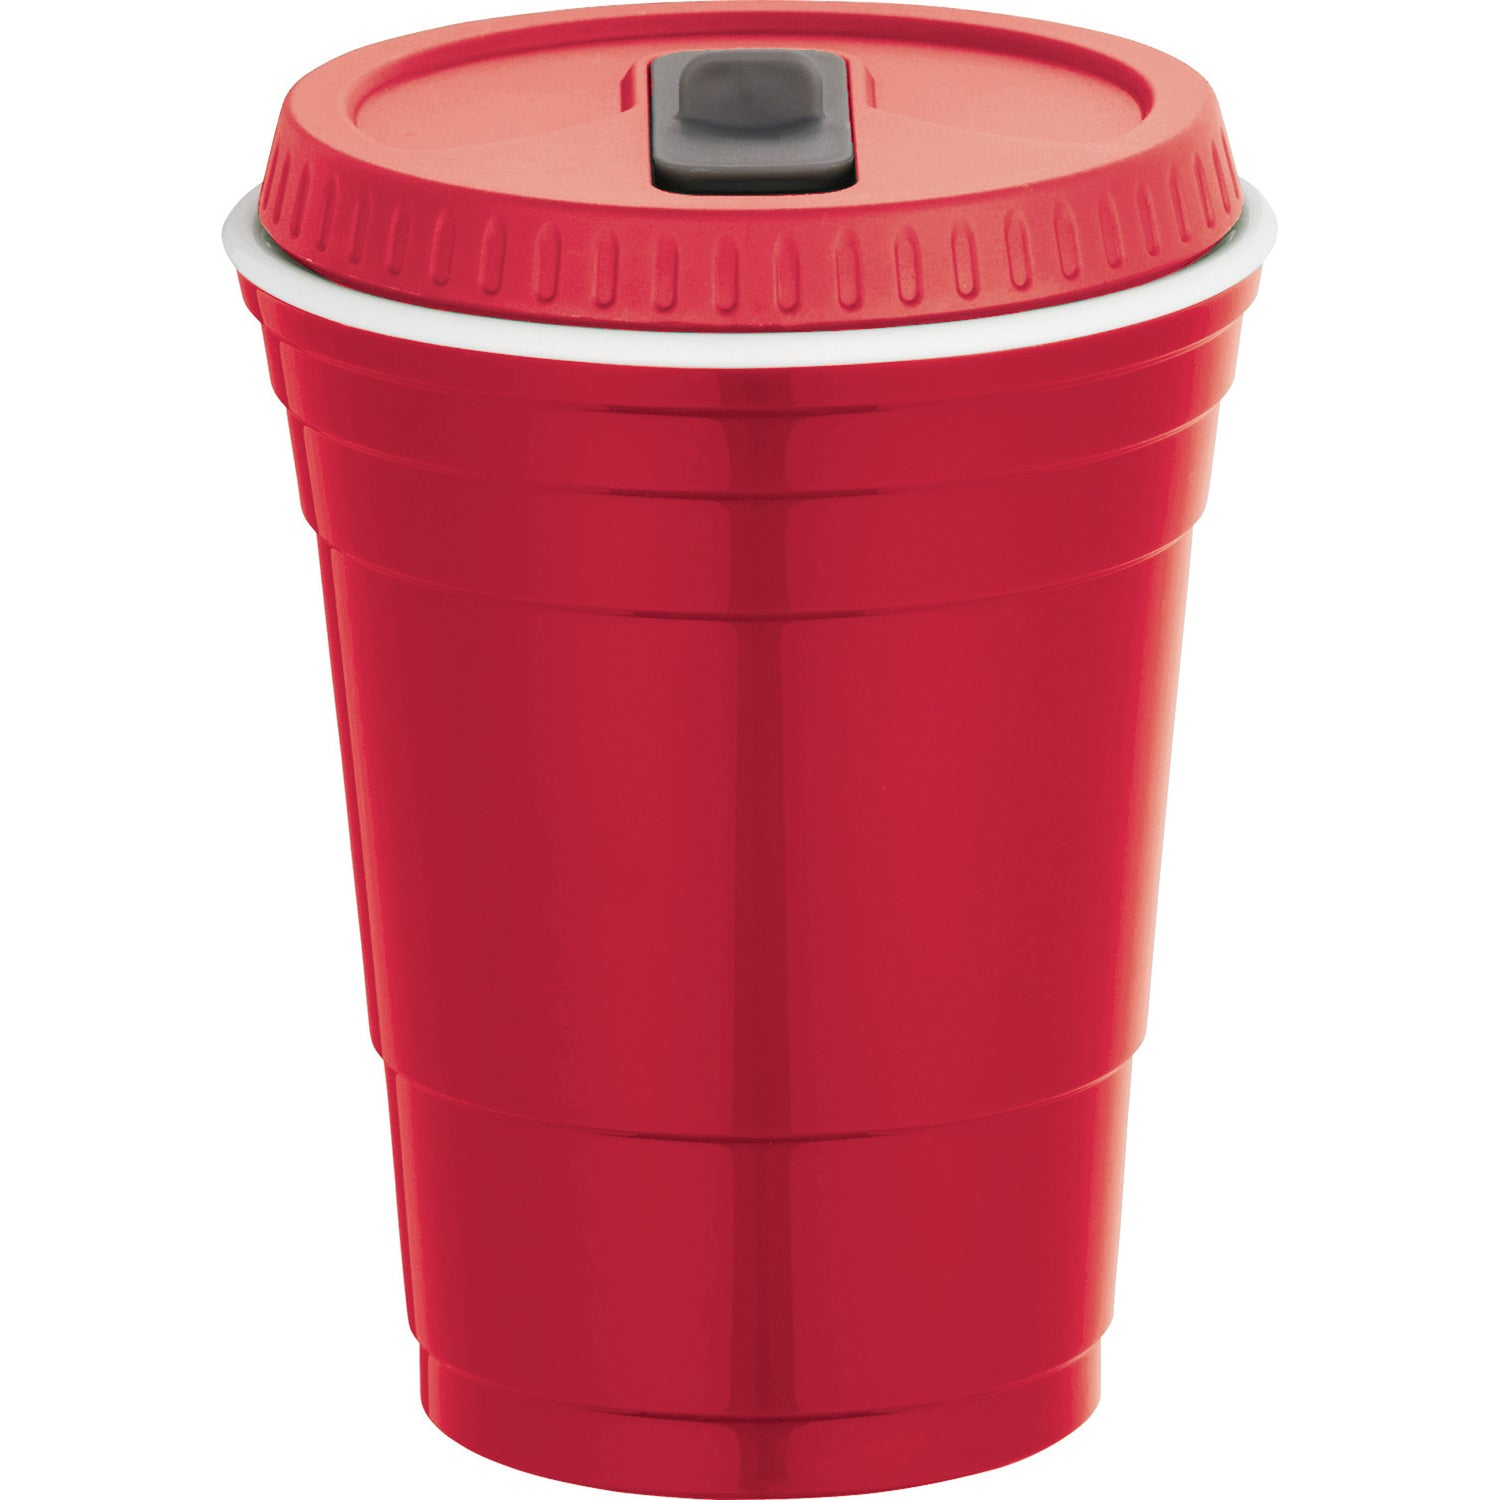 Cup With Lid : Game day party cup with lid oz logo drinkware and